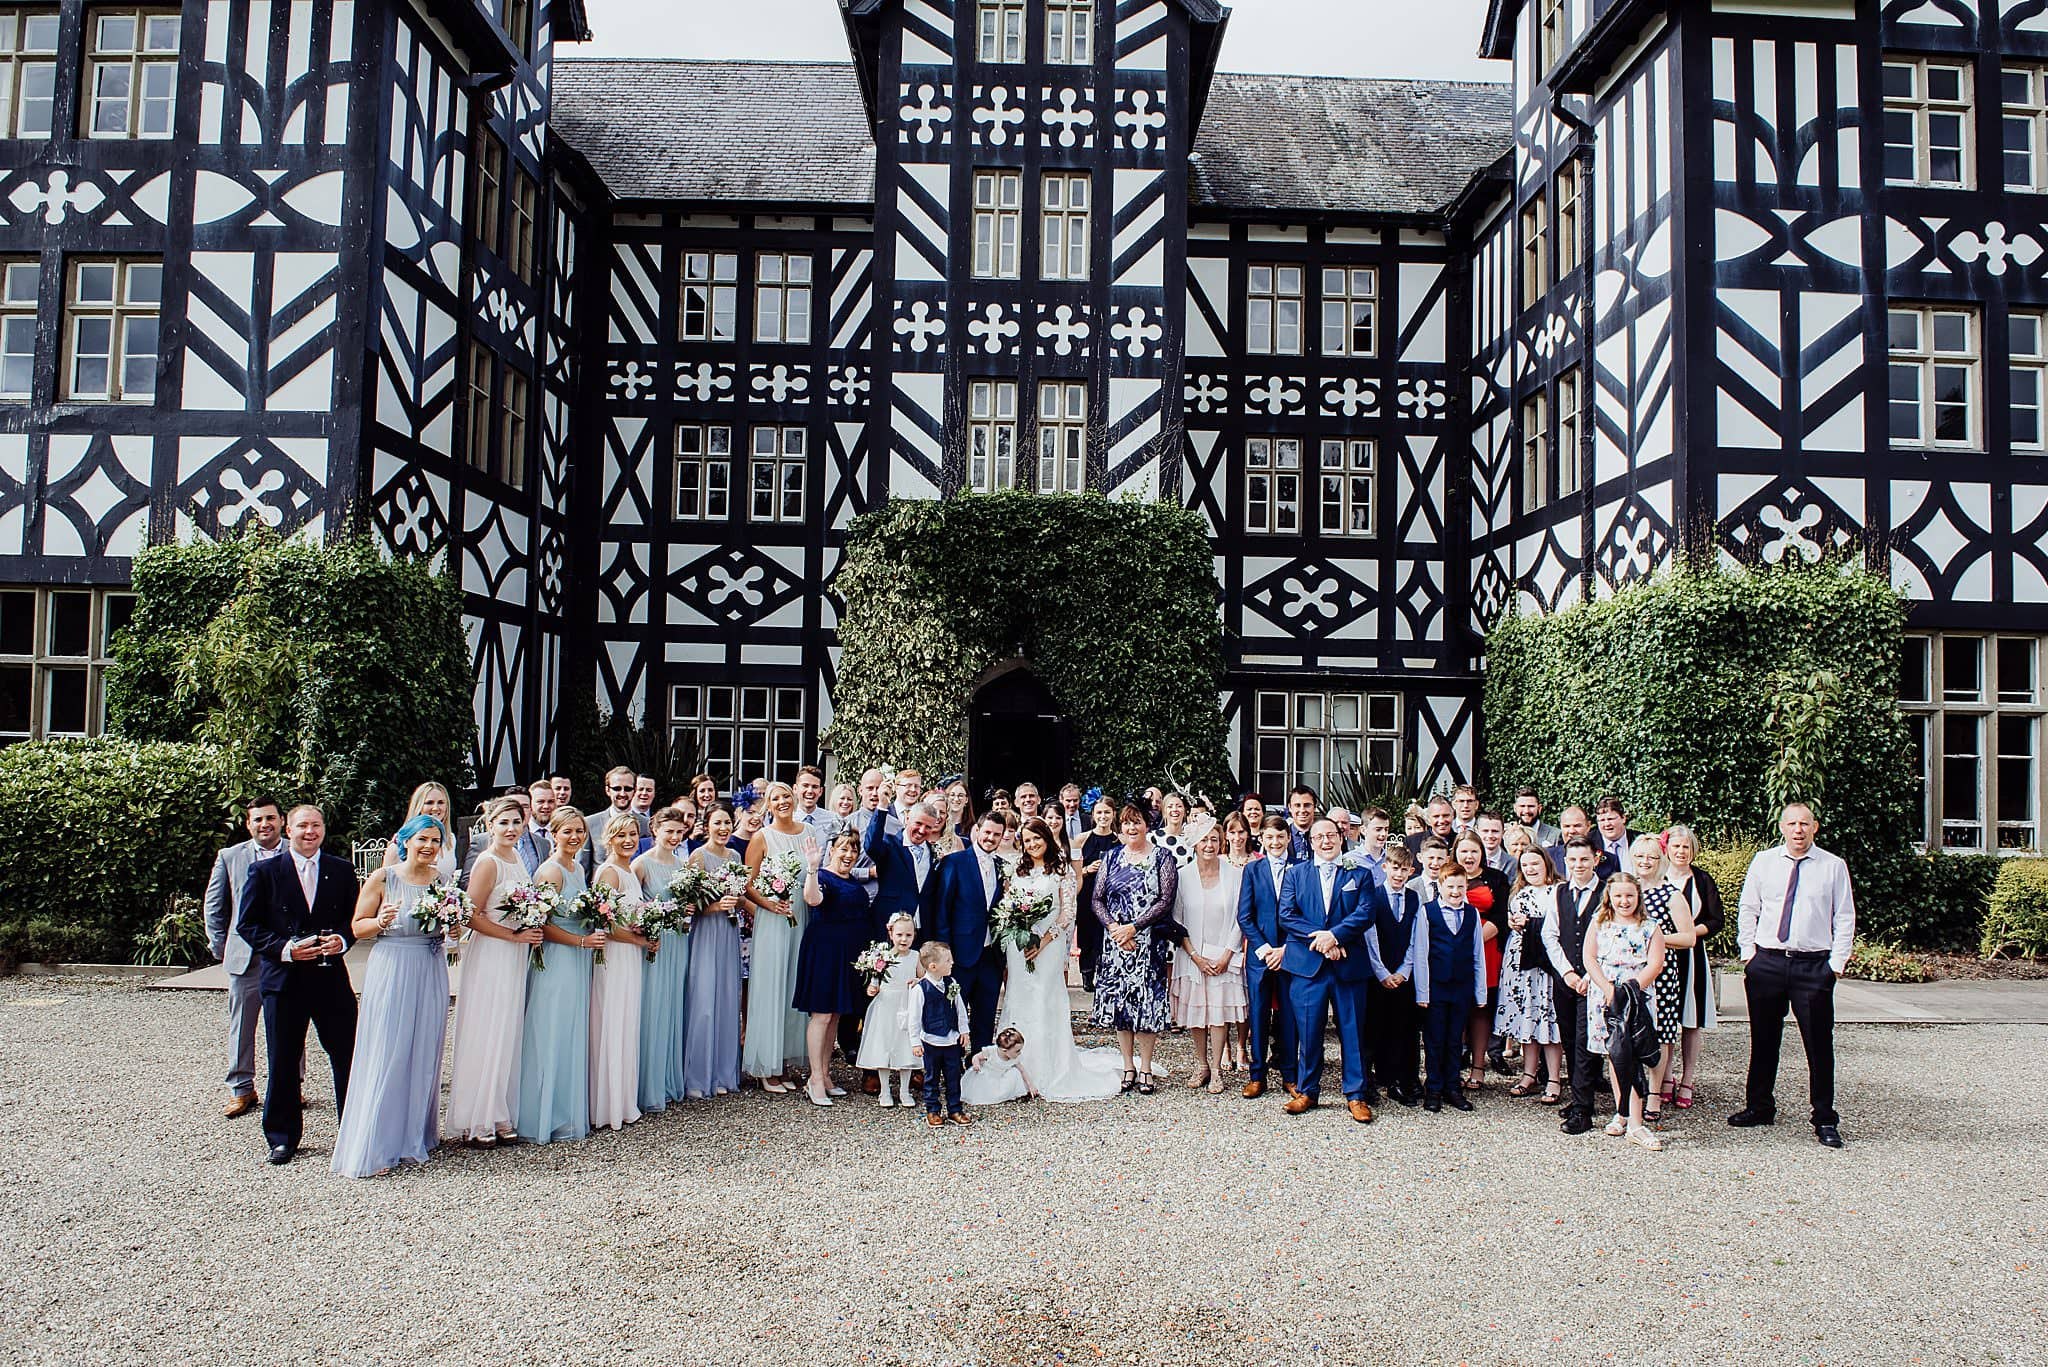 Large group shot of the wedding guest in front of the house at Gregnog Hall